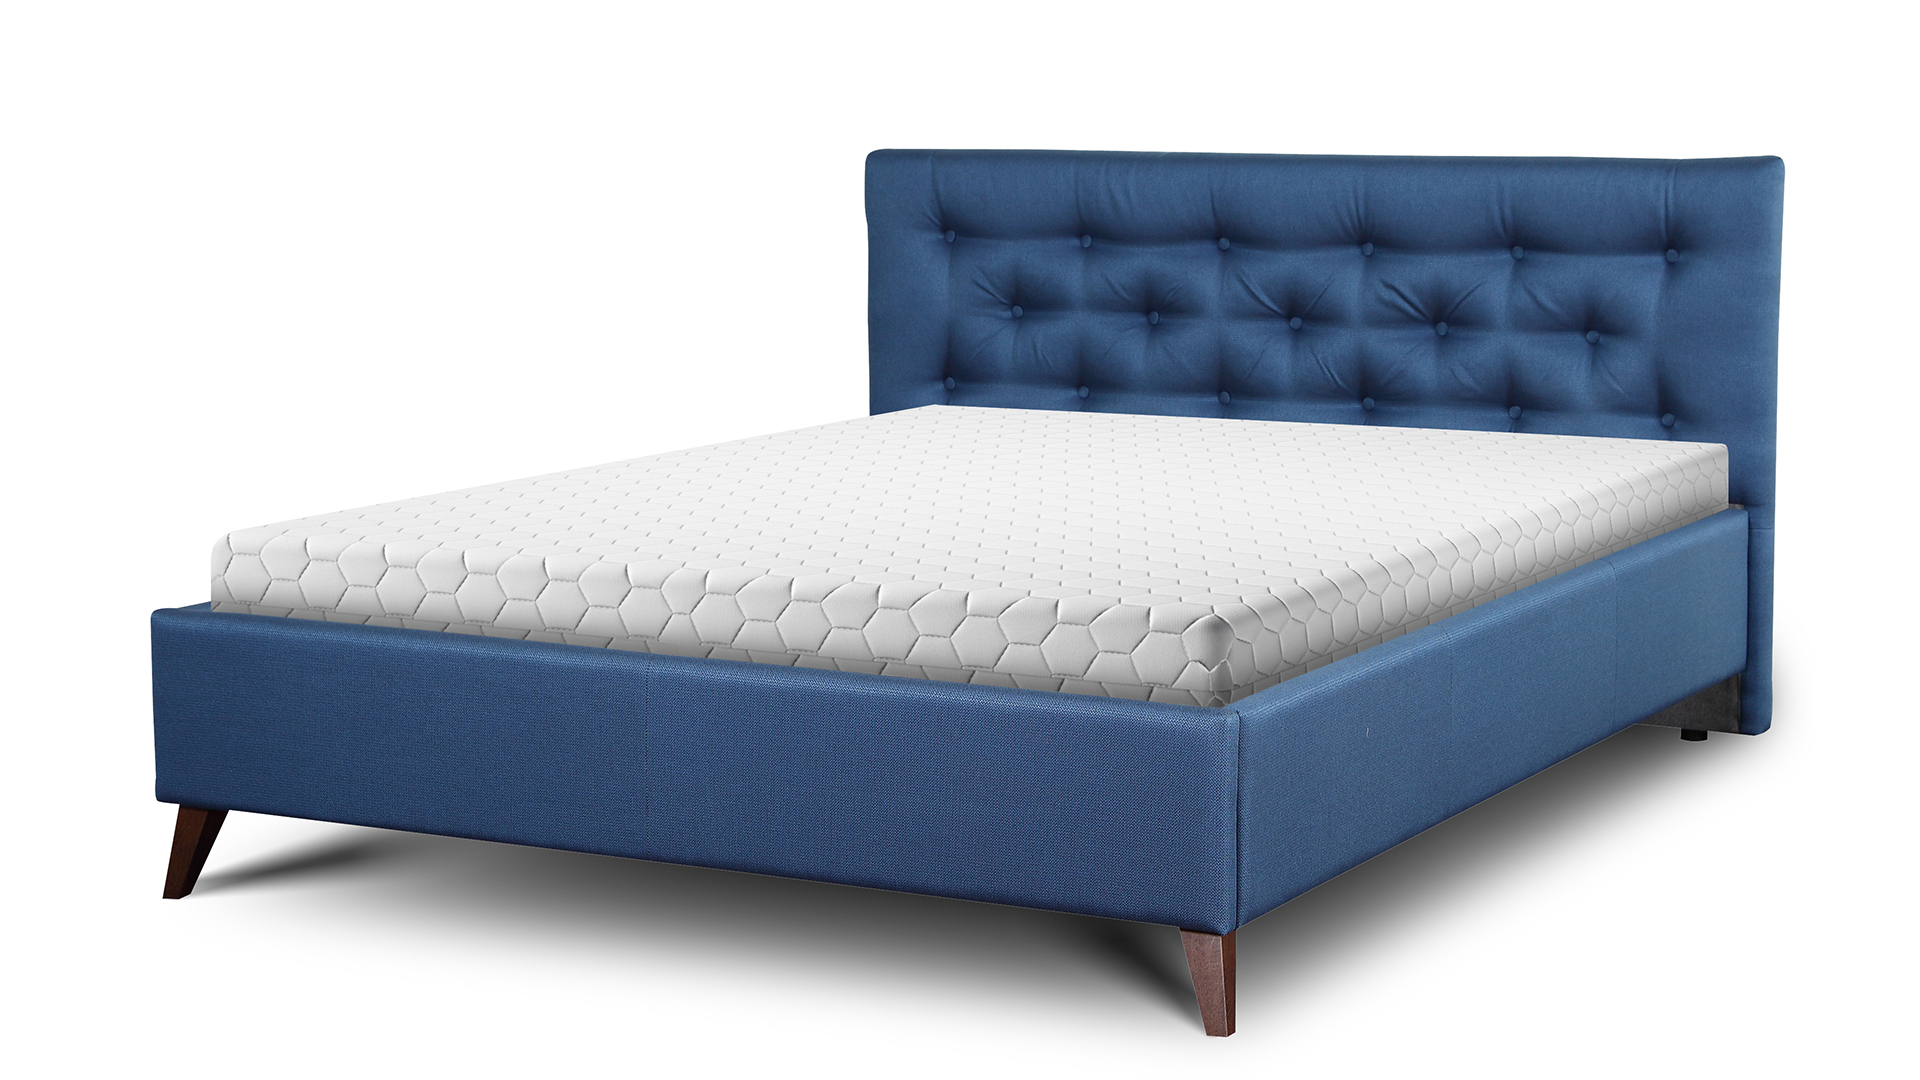 Bed Glame 160